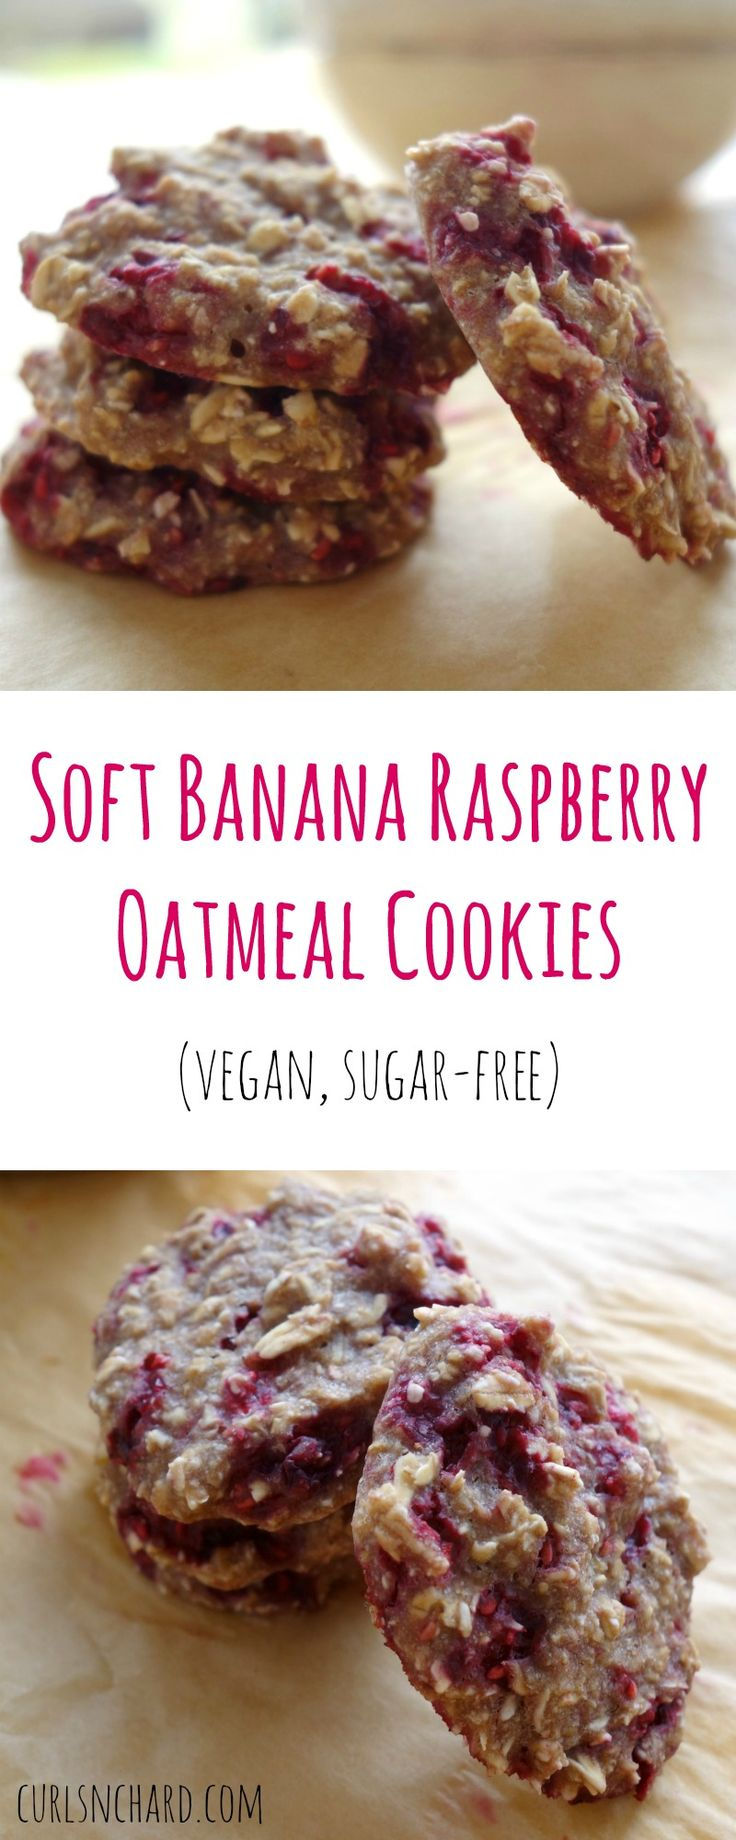 Soft Banana Raspberry Oatmeal Cookies adapted from Chloe Langer's E-Book. A vegan, quick and simple sugar-free treat made with just 3 ingredients!